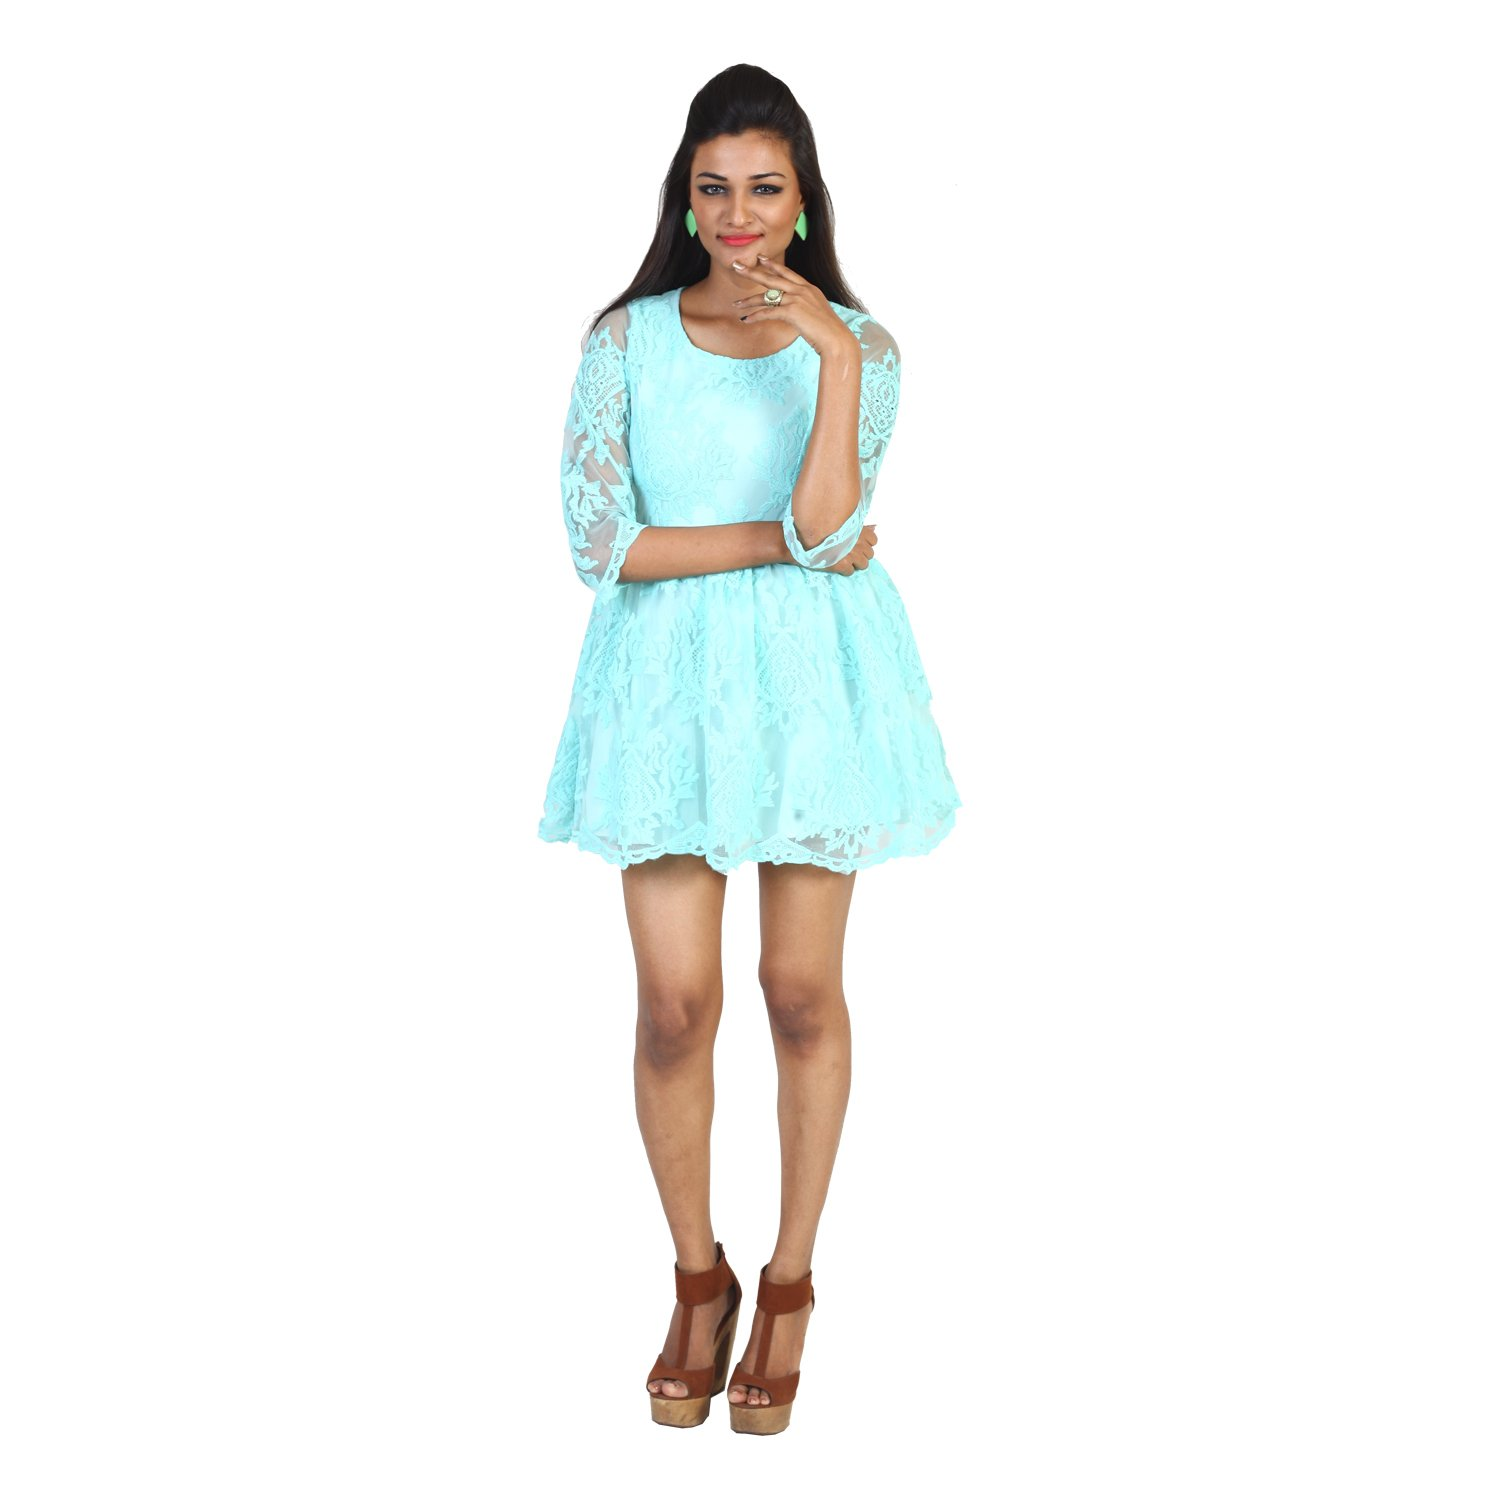 Nuts Lace Dress Sea Blue Colour Small Size Amazonin